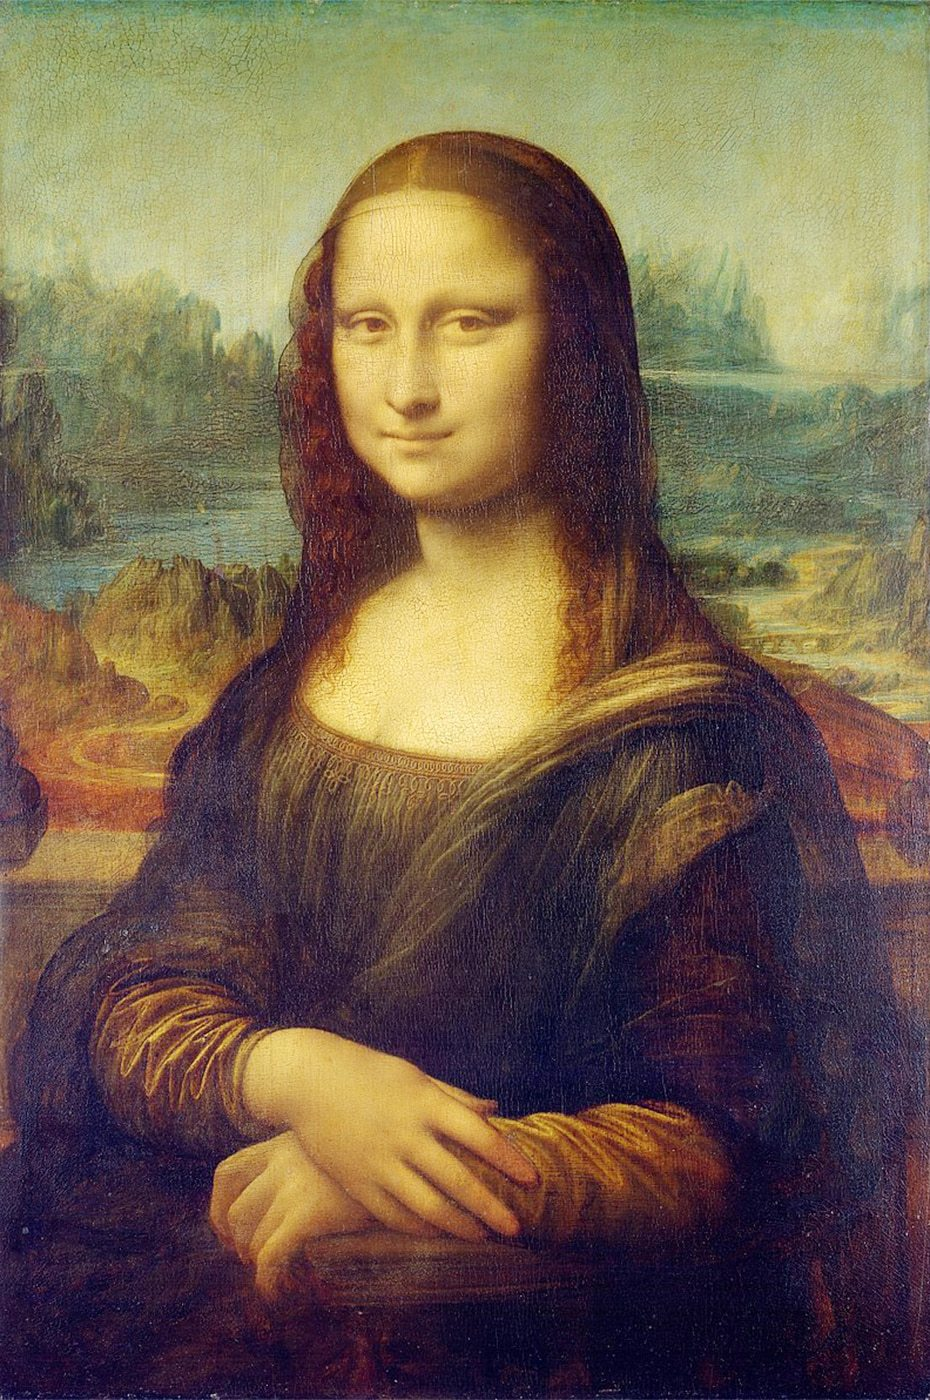 Leonardo Mona Lisa Diamond Painting